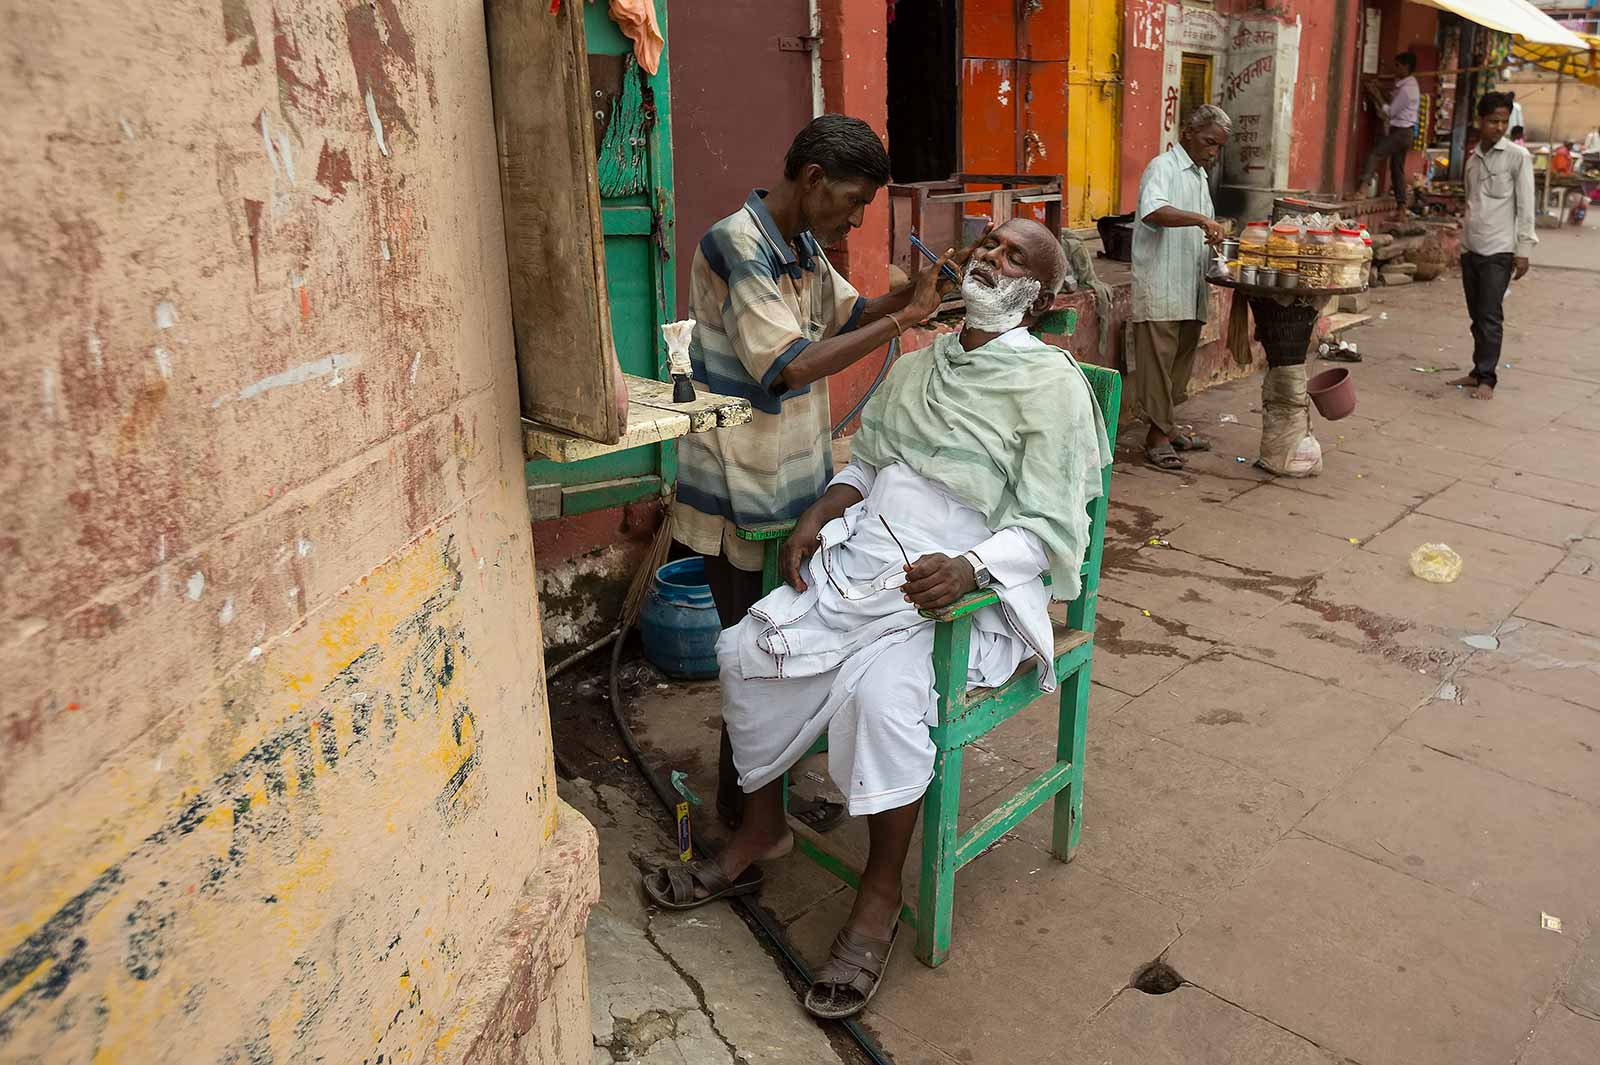 A typical barber shop along the Ghats in Varanasi.